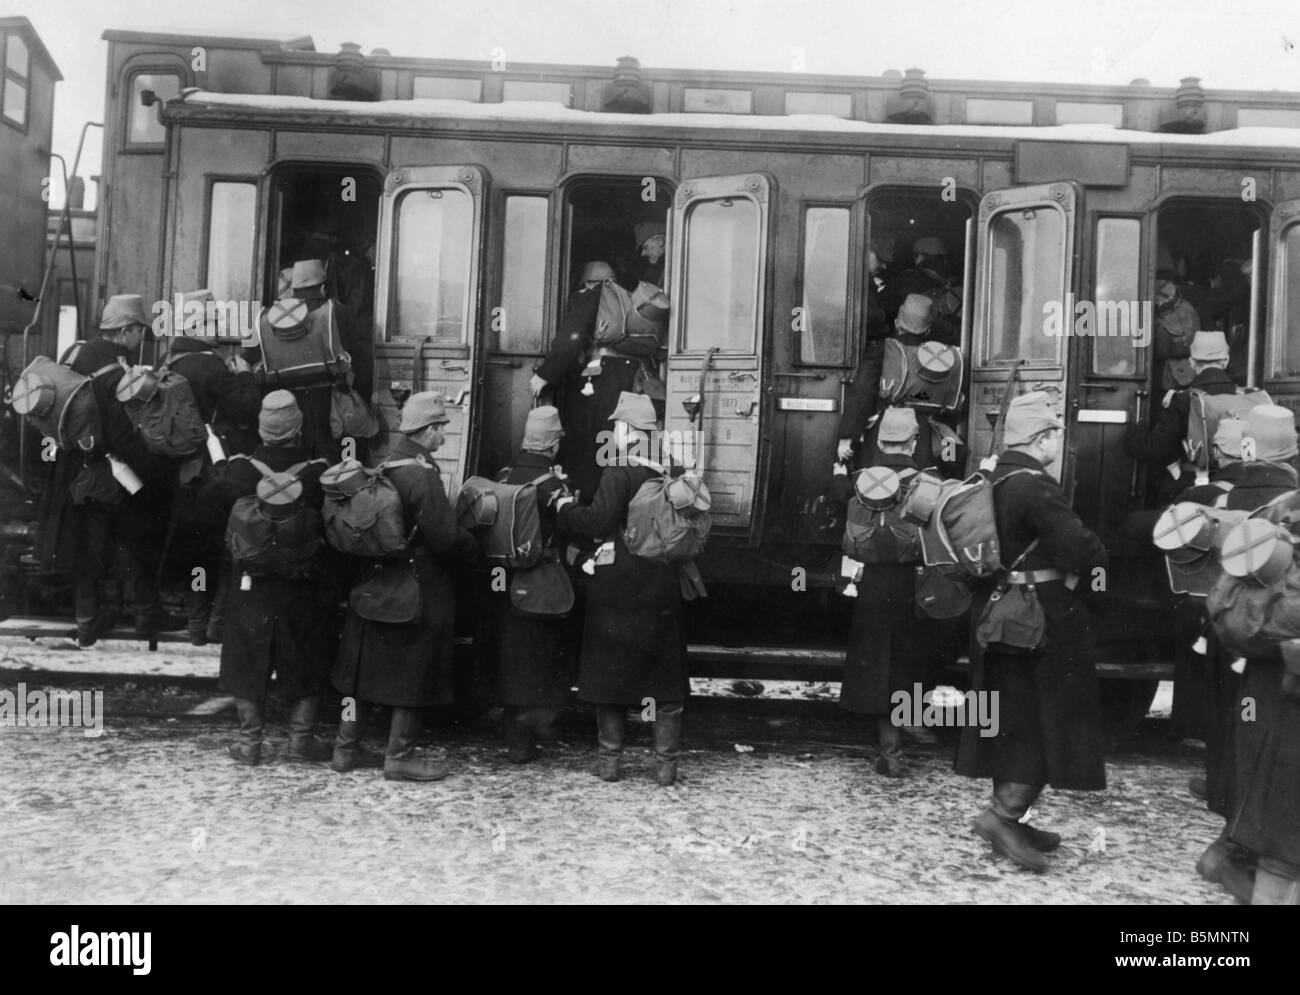 8 1914 0 0 A4 5 WWI Transport of the militia photo World War I Transport of troops at a Berlin station departure - Stock Image